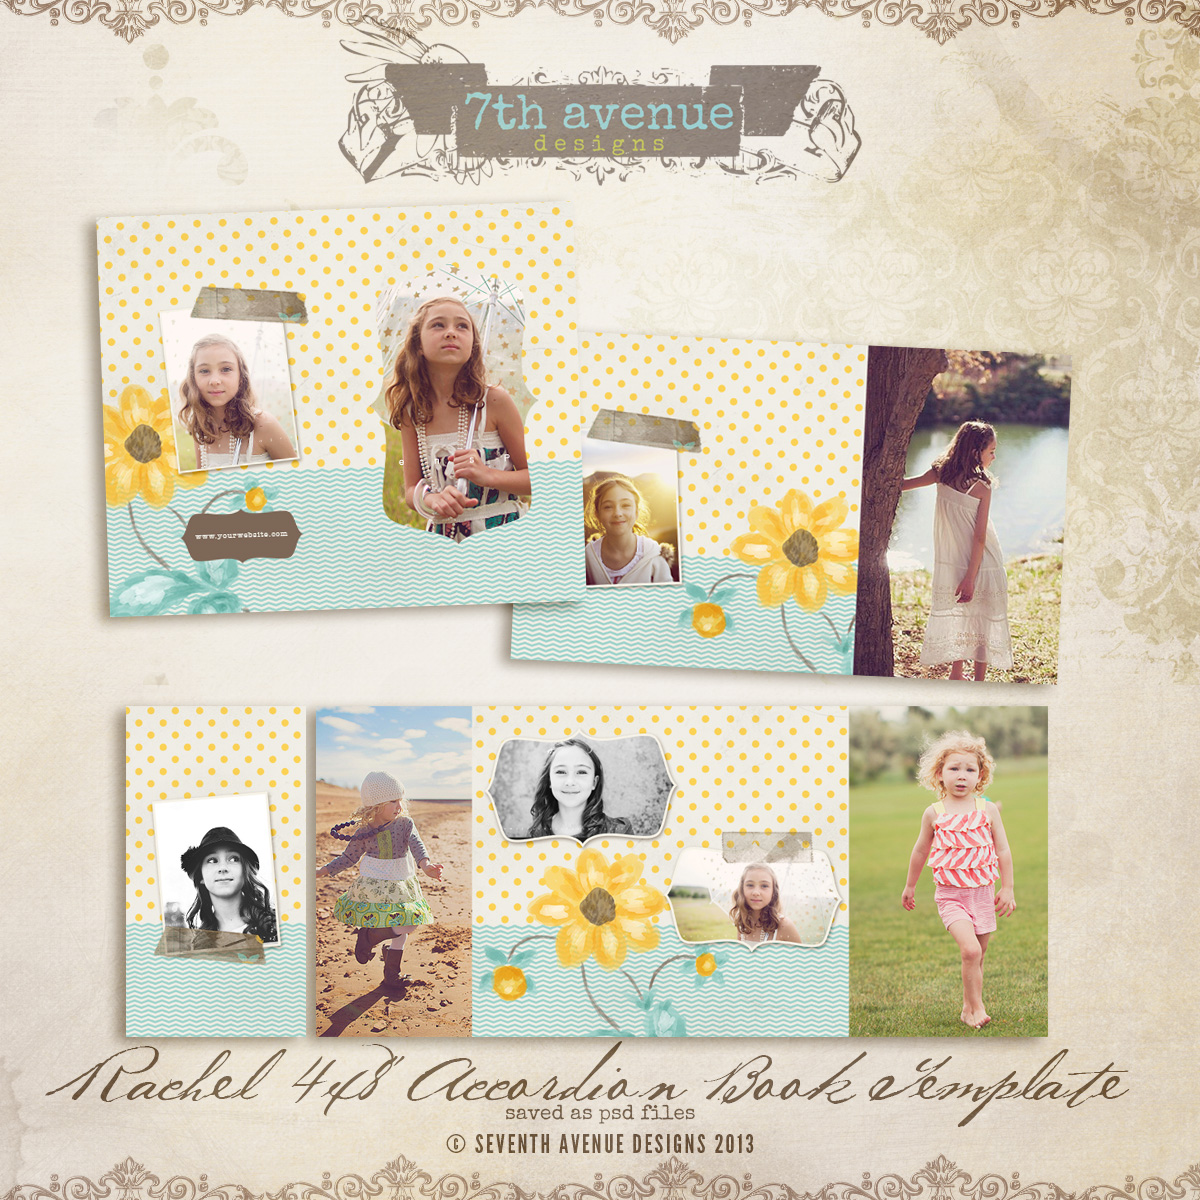 Rachel 4x8 Accordion book templates